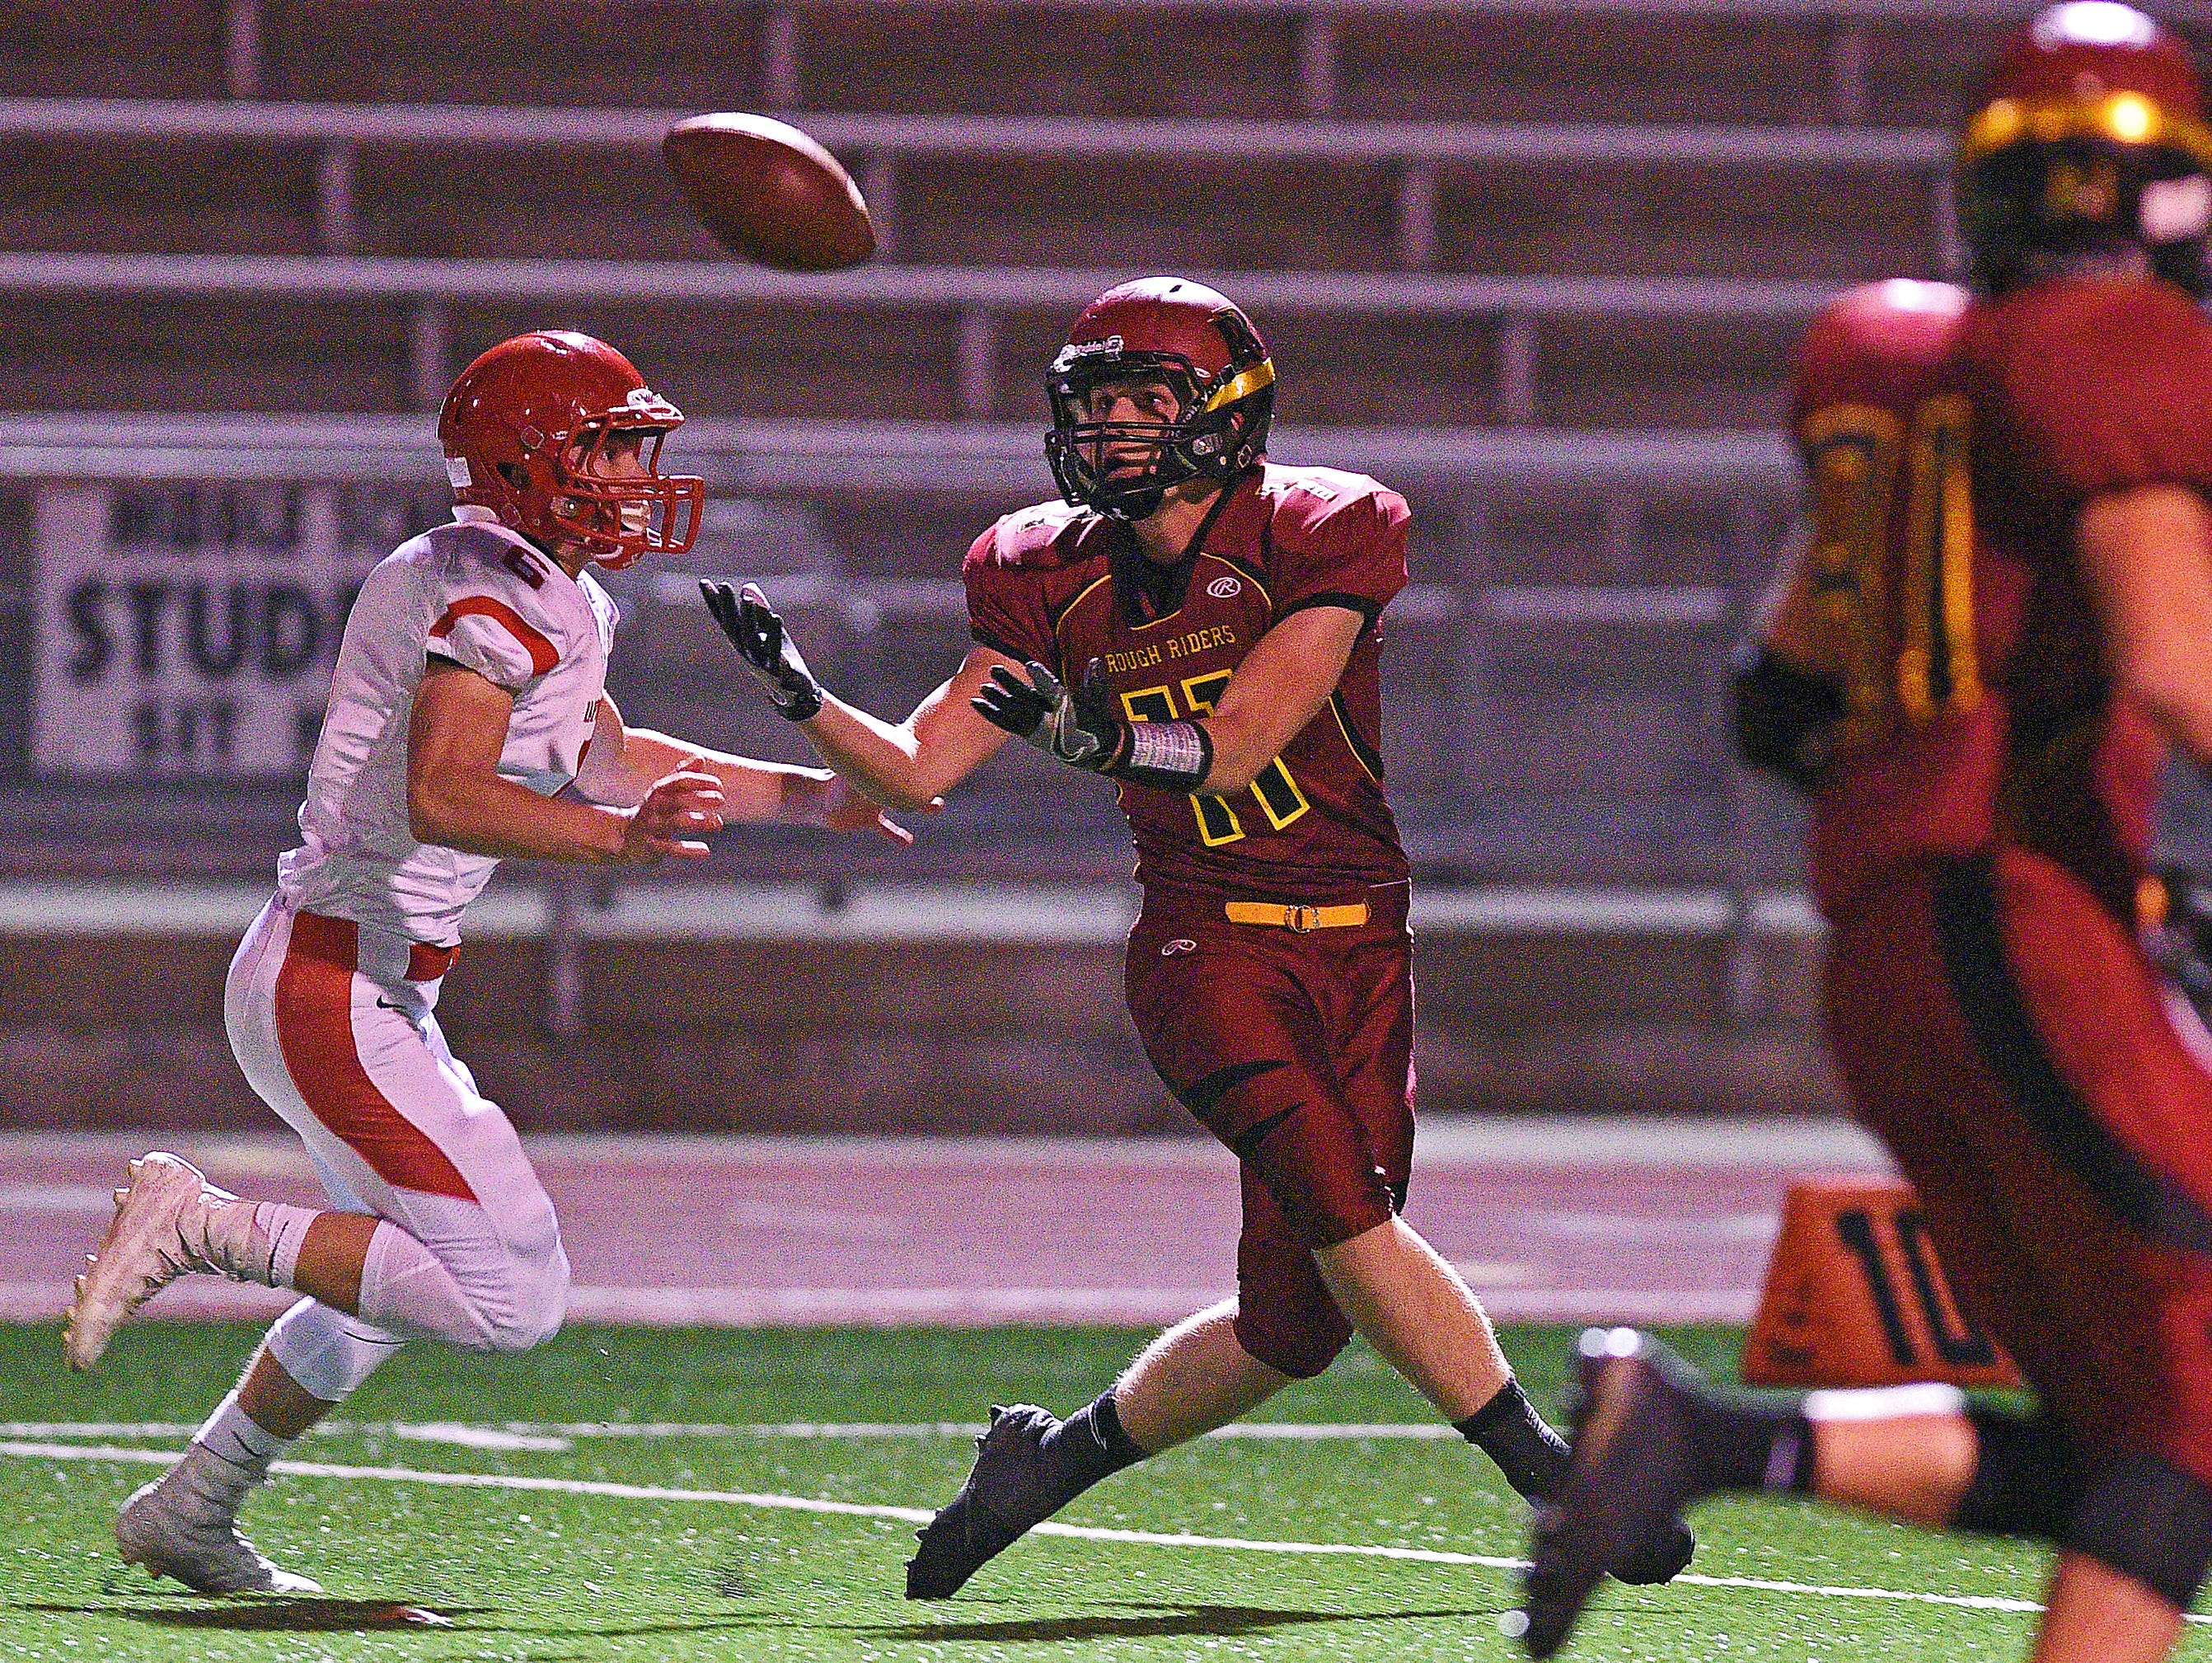 Roosevelt's Austin Johnson (11) catches a pass in front of Rapid City Central's Tate Remmers (6) during a game Friday, Oct. 14, 2016, at Howard Wood Field in Sioux Falls.